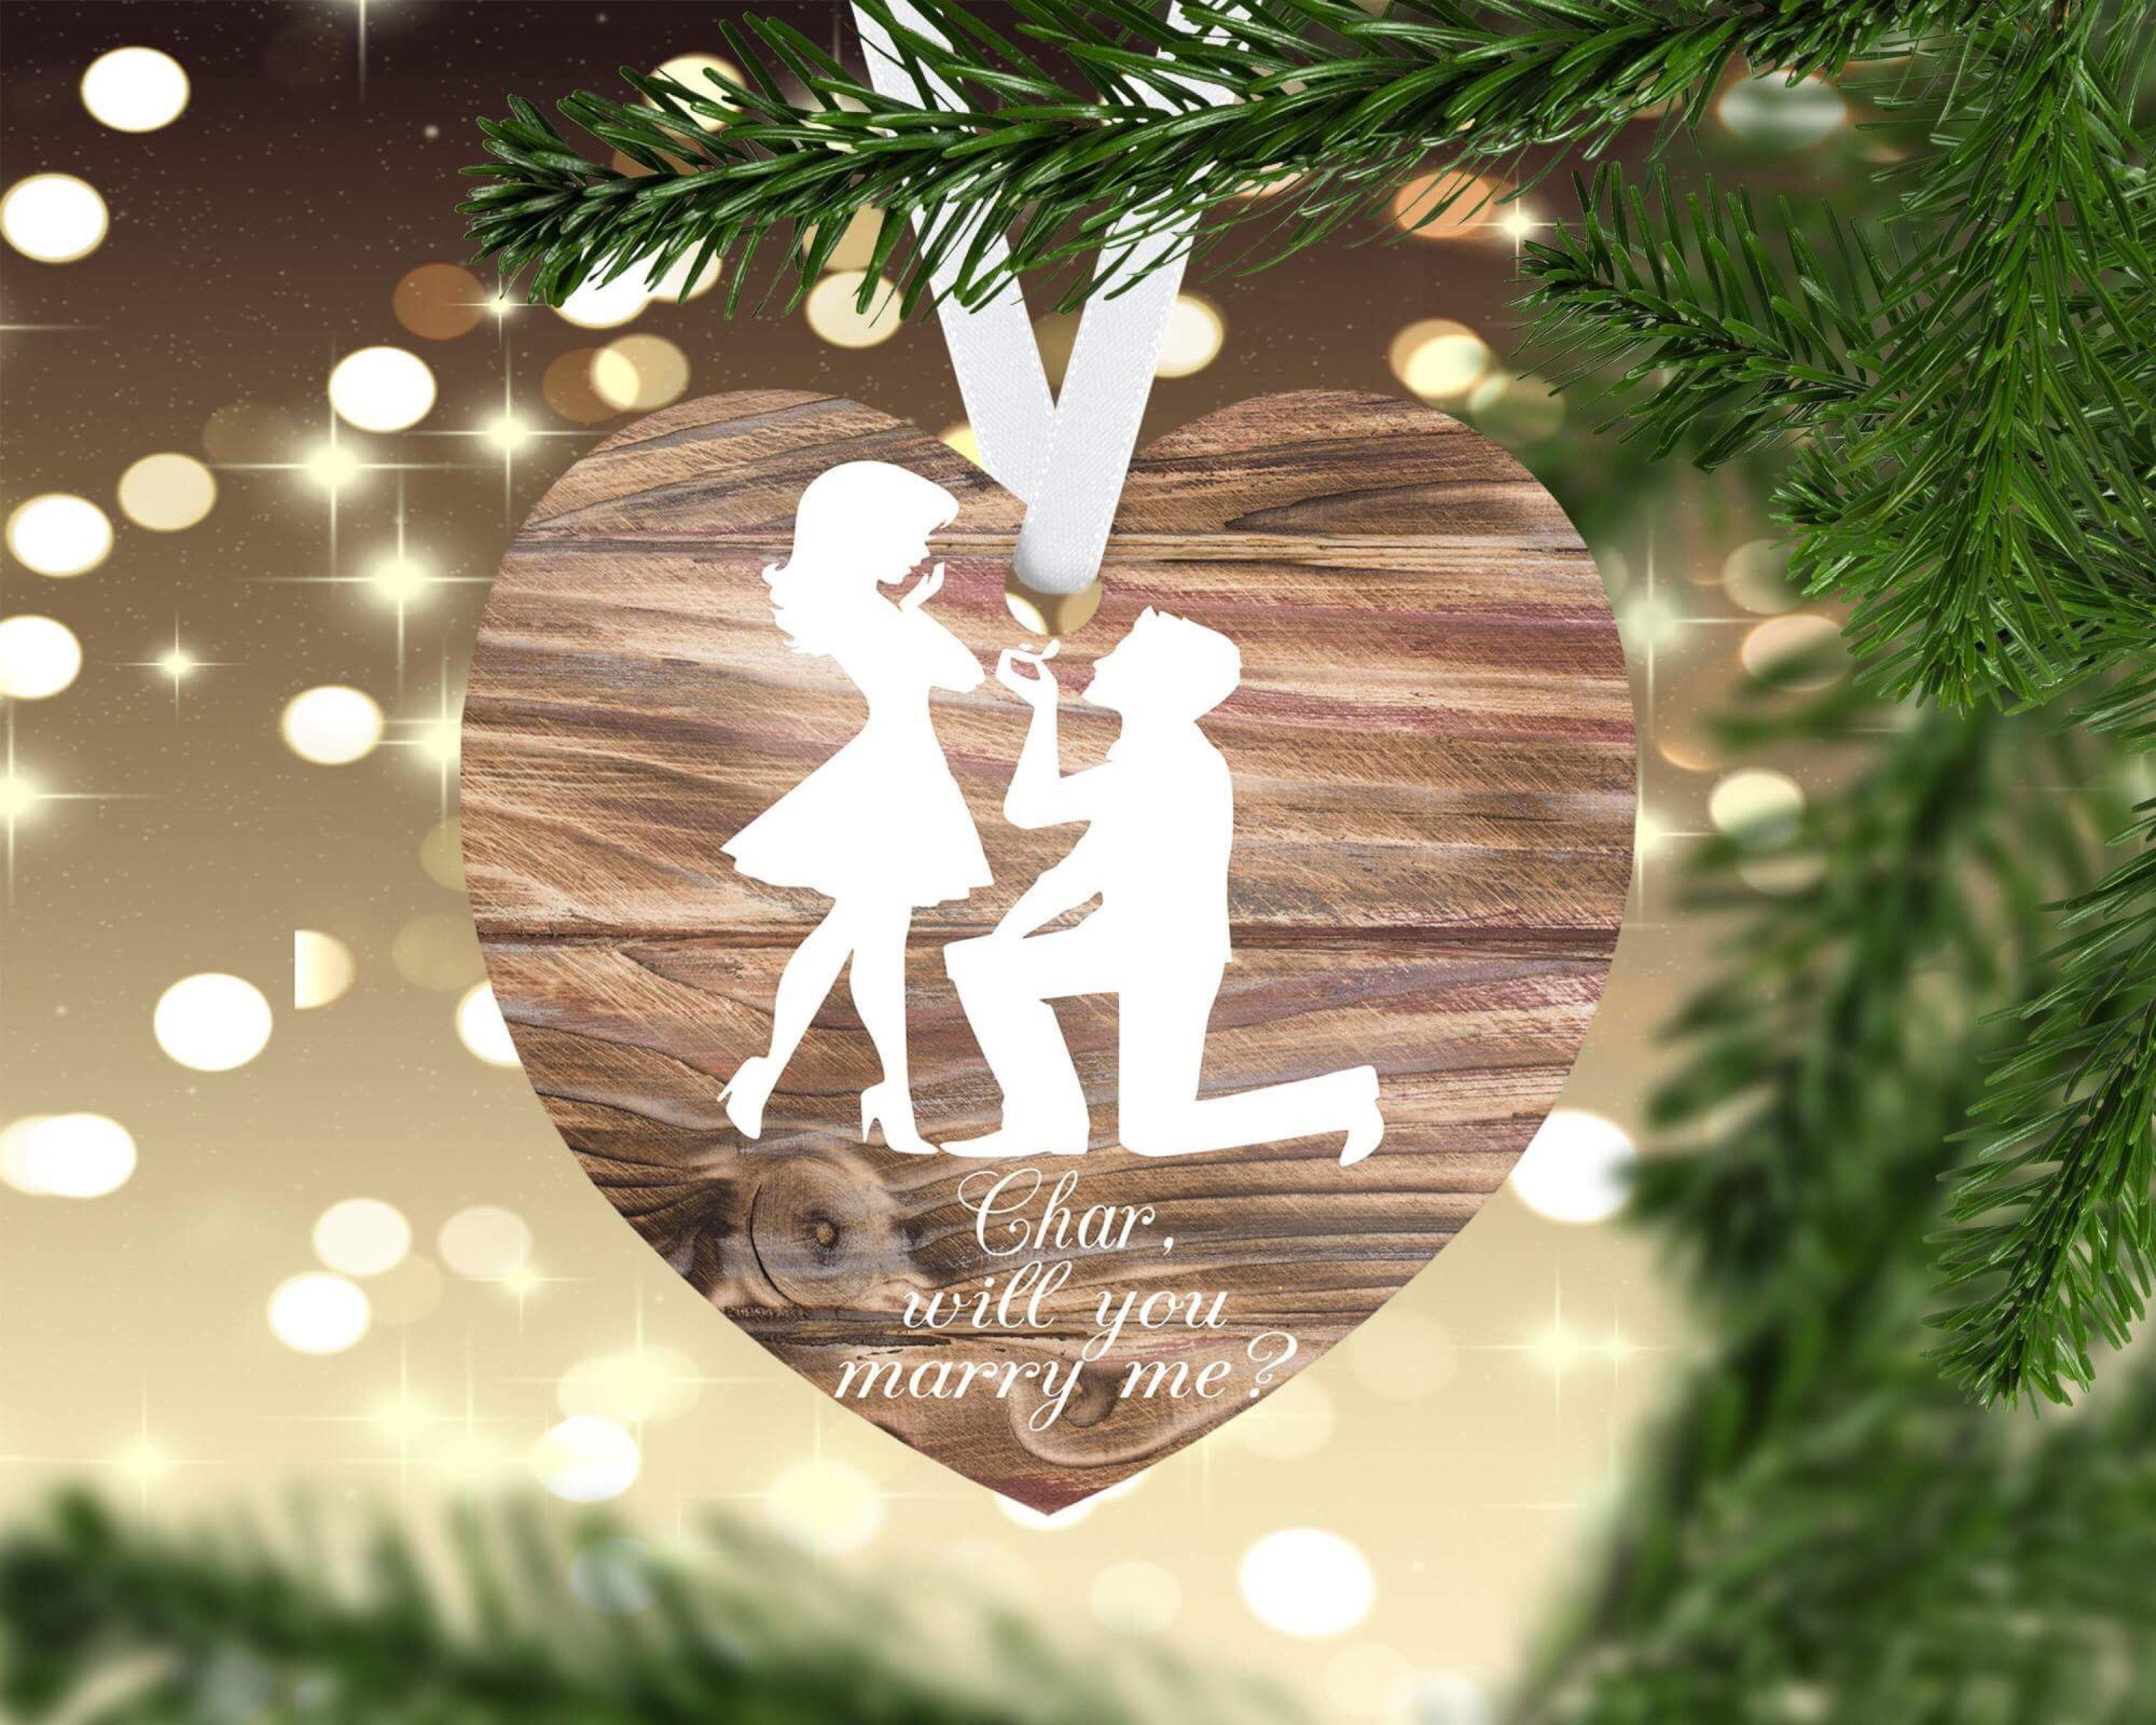 Proposal Ornament Christmas Proposal Will You Marry Me